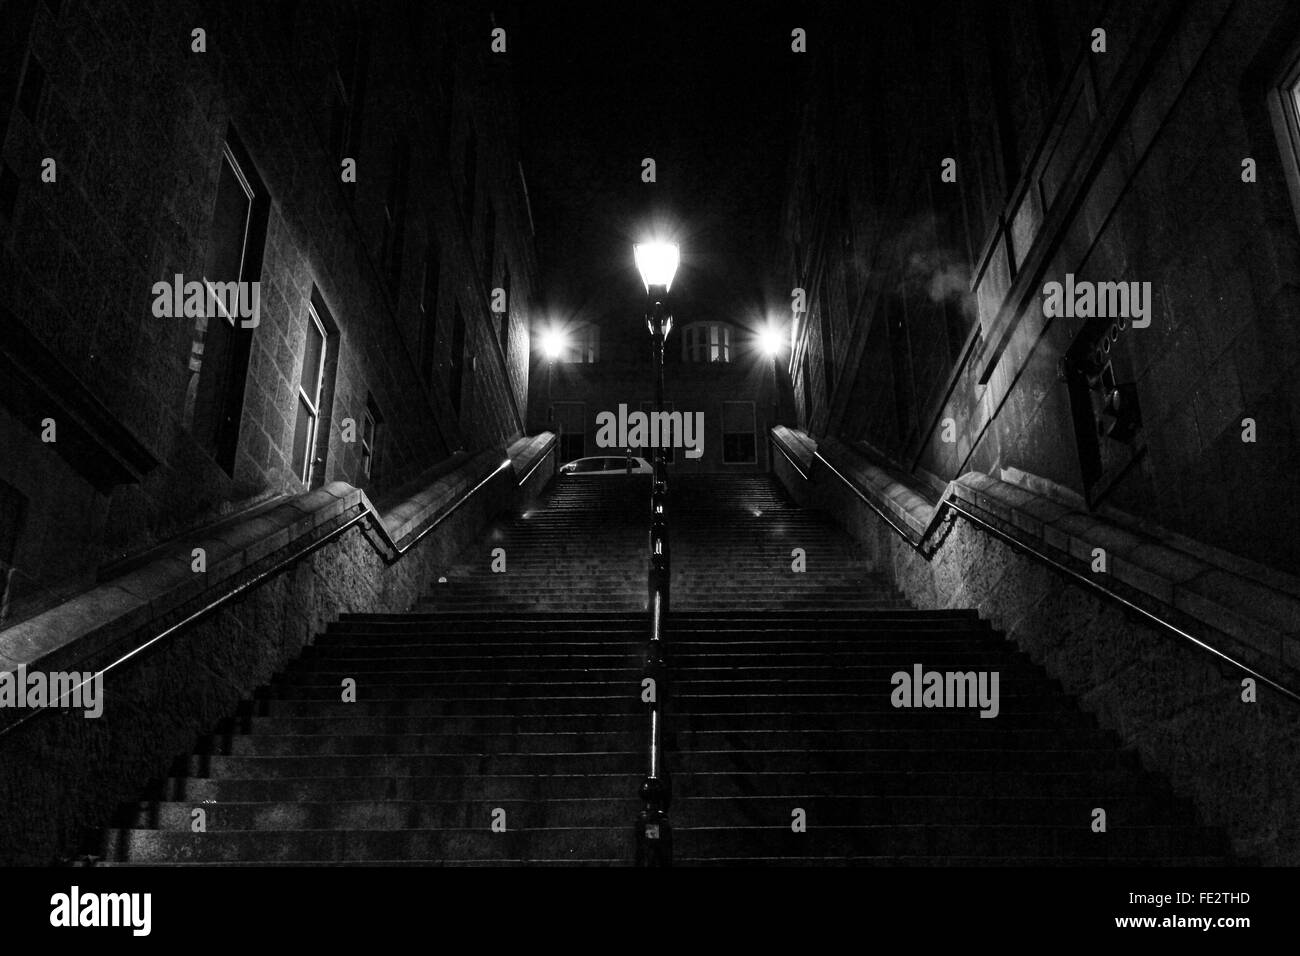 Low Angle View Of Illuminated Steps - Stock Image